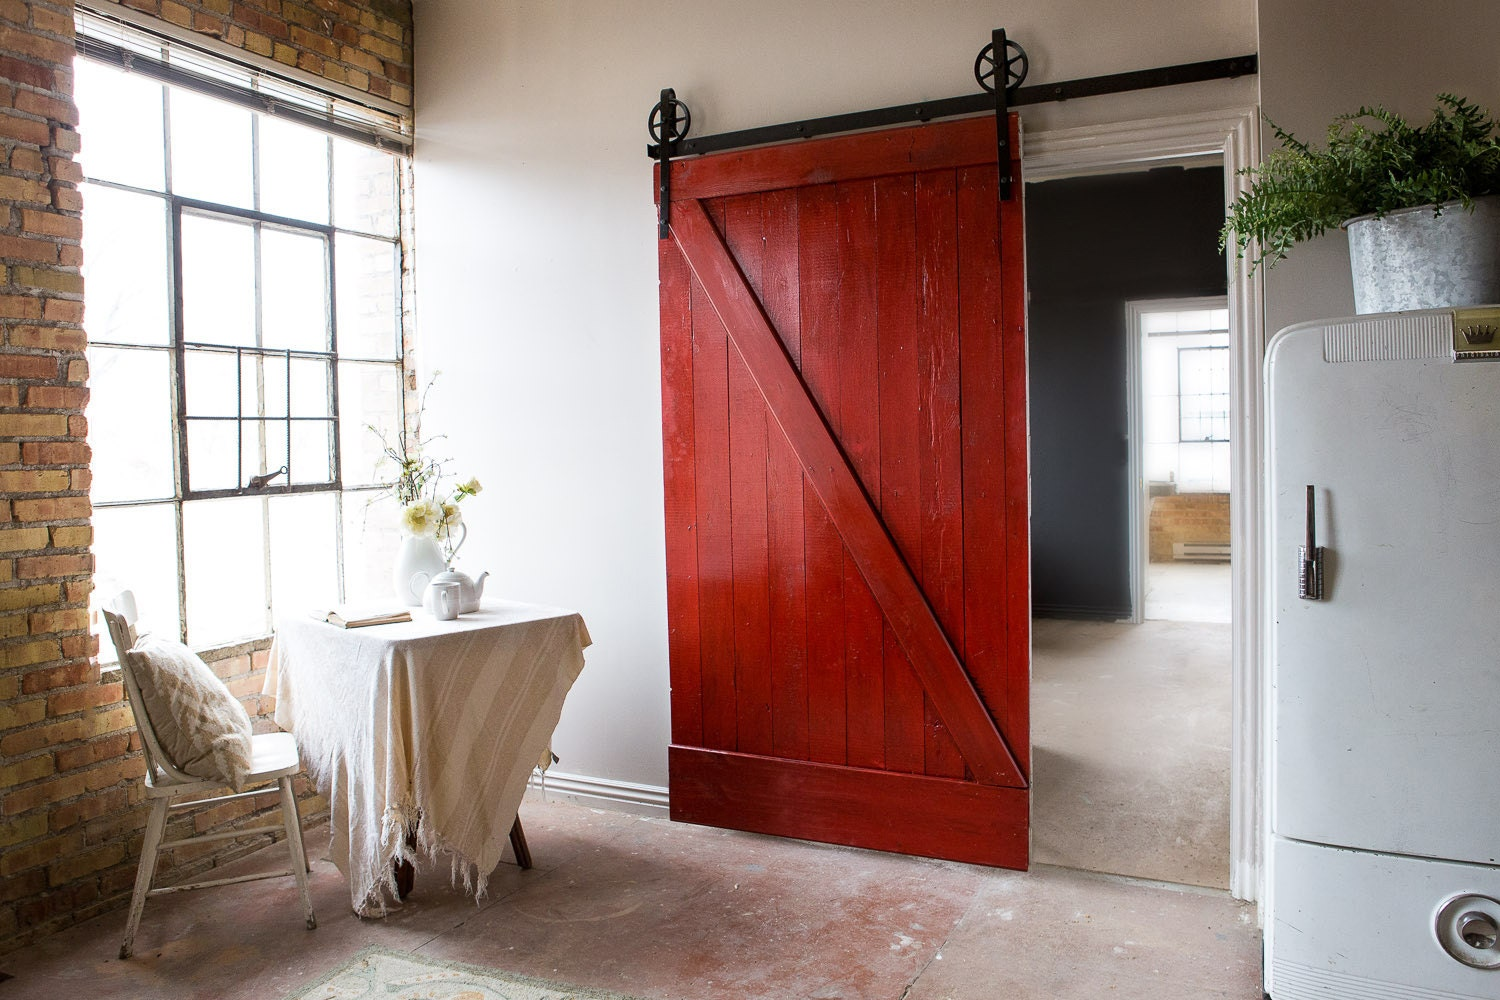 🔎zoom - Vintage Industrial Spoked European Sliding Barn Door Closet